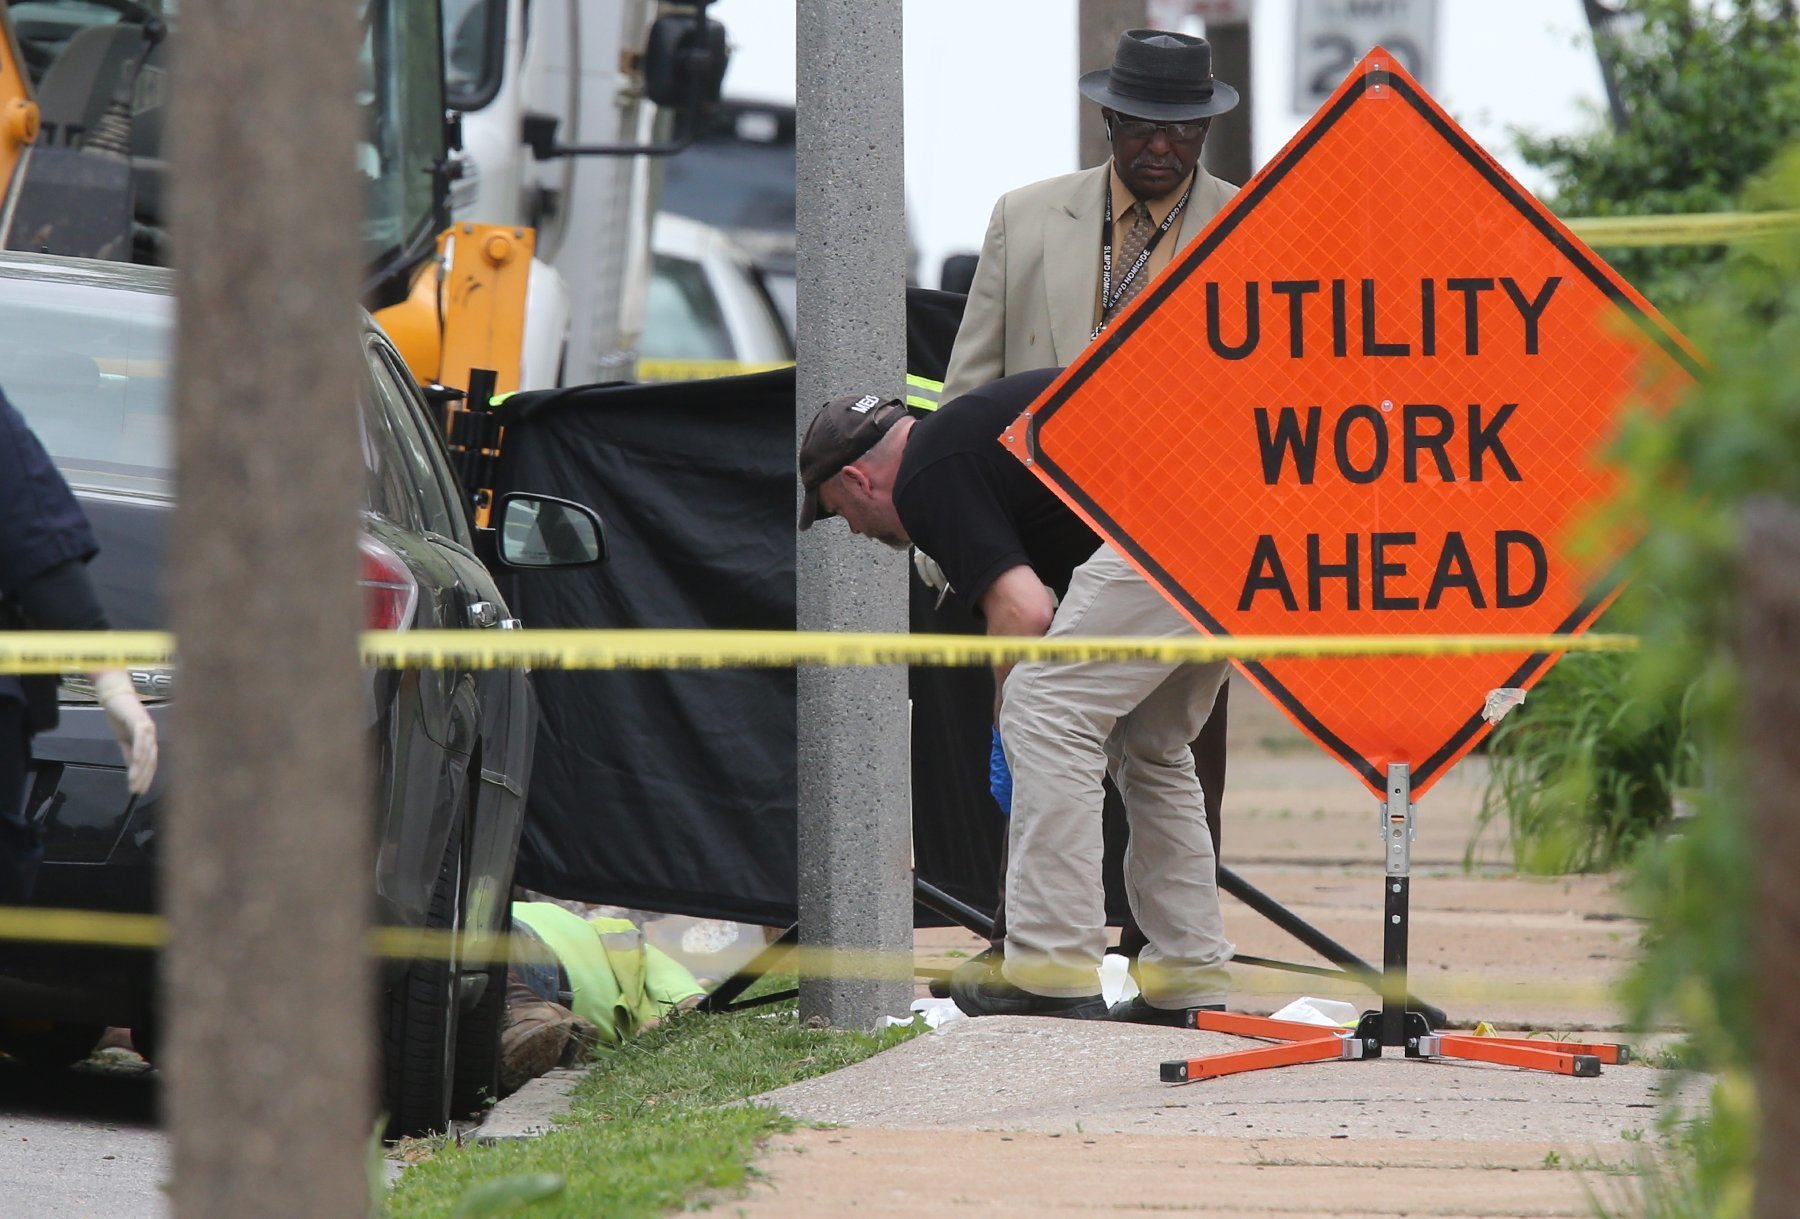 Utility Workers Killed-3 Police investigate a triple shooting in which two Laclede Gas workers were shot and killed in St. Louis on Thursday, April 20, 2017. Police say the shooter also shot and killed himself. (JB Forbes/St. Louis Post-Dispatch via AP)